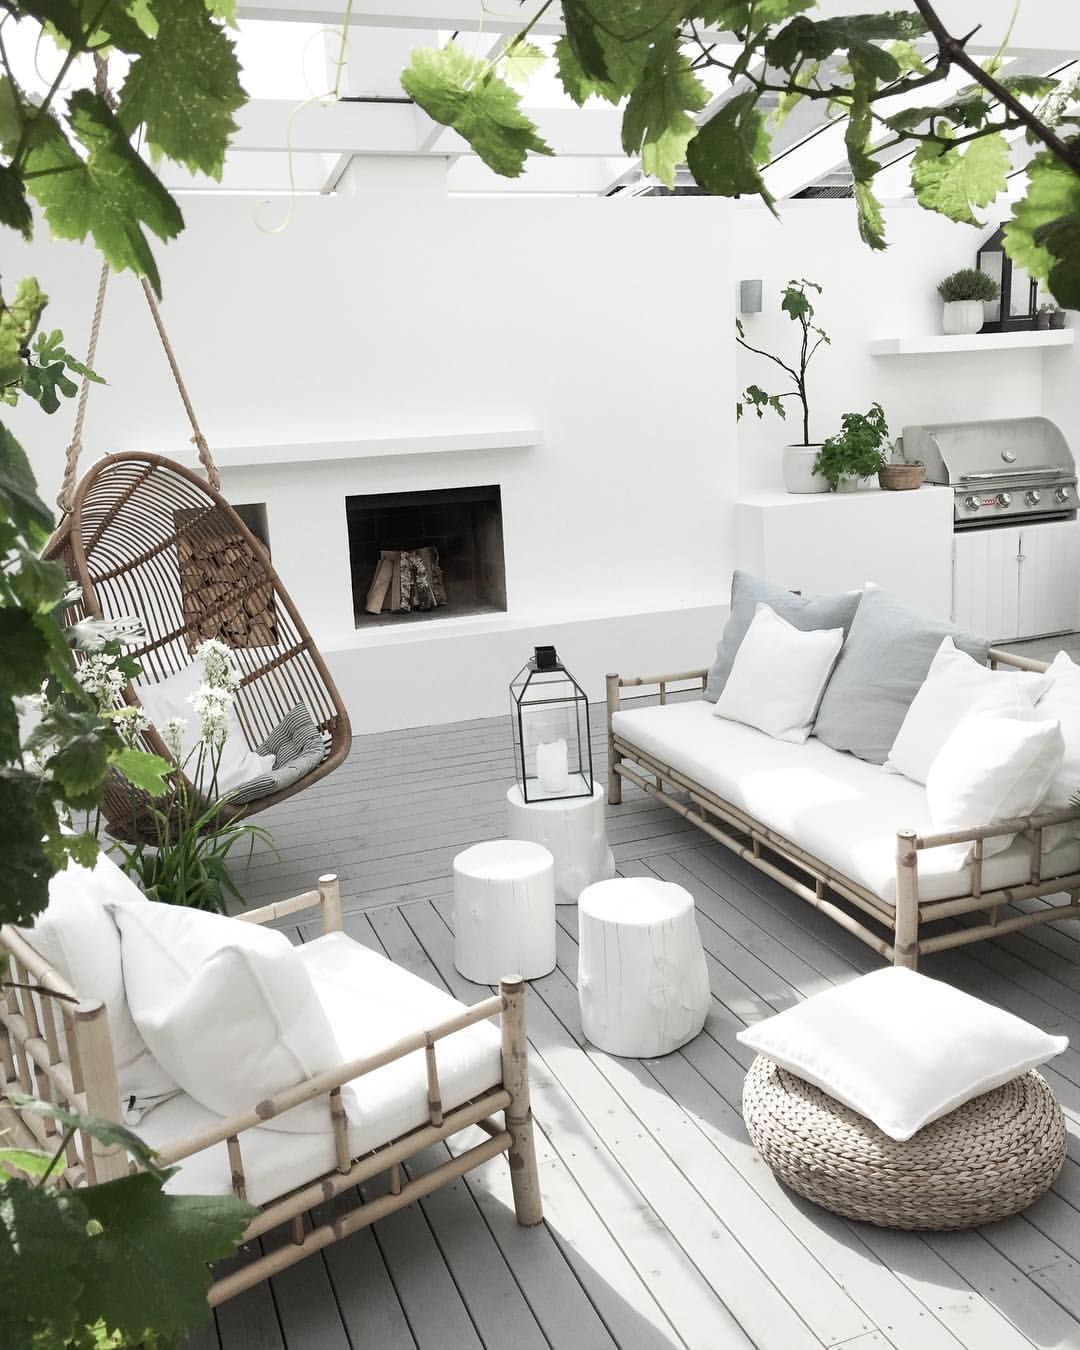 Terrace houses or terraced demonstrate  style of medium density housing that originated in europe the th century terraceshishalounge also house design ideas inspiration  pictures outdoor styling rh pinterest